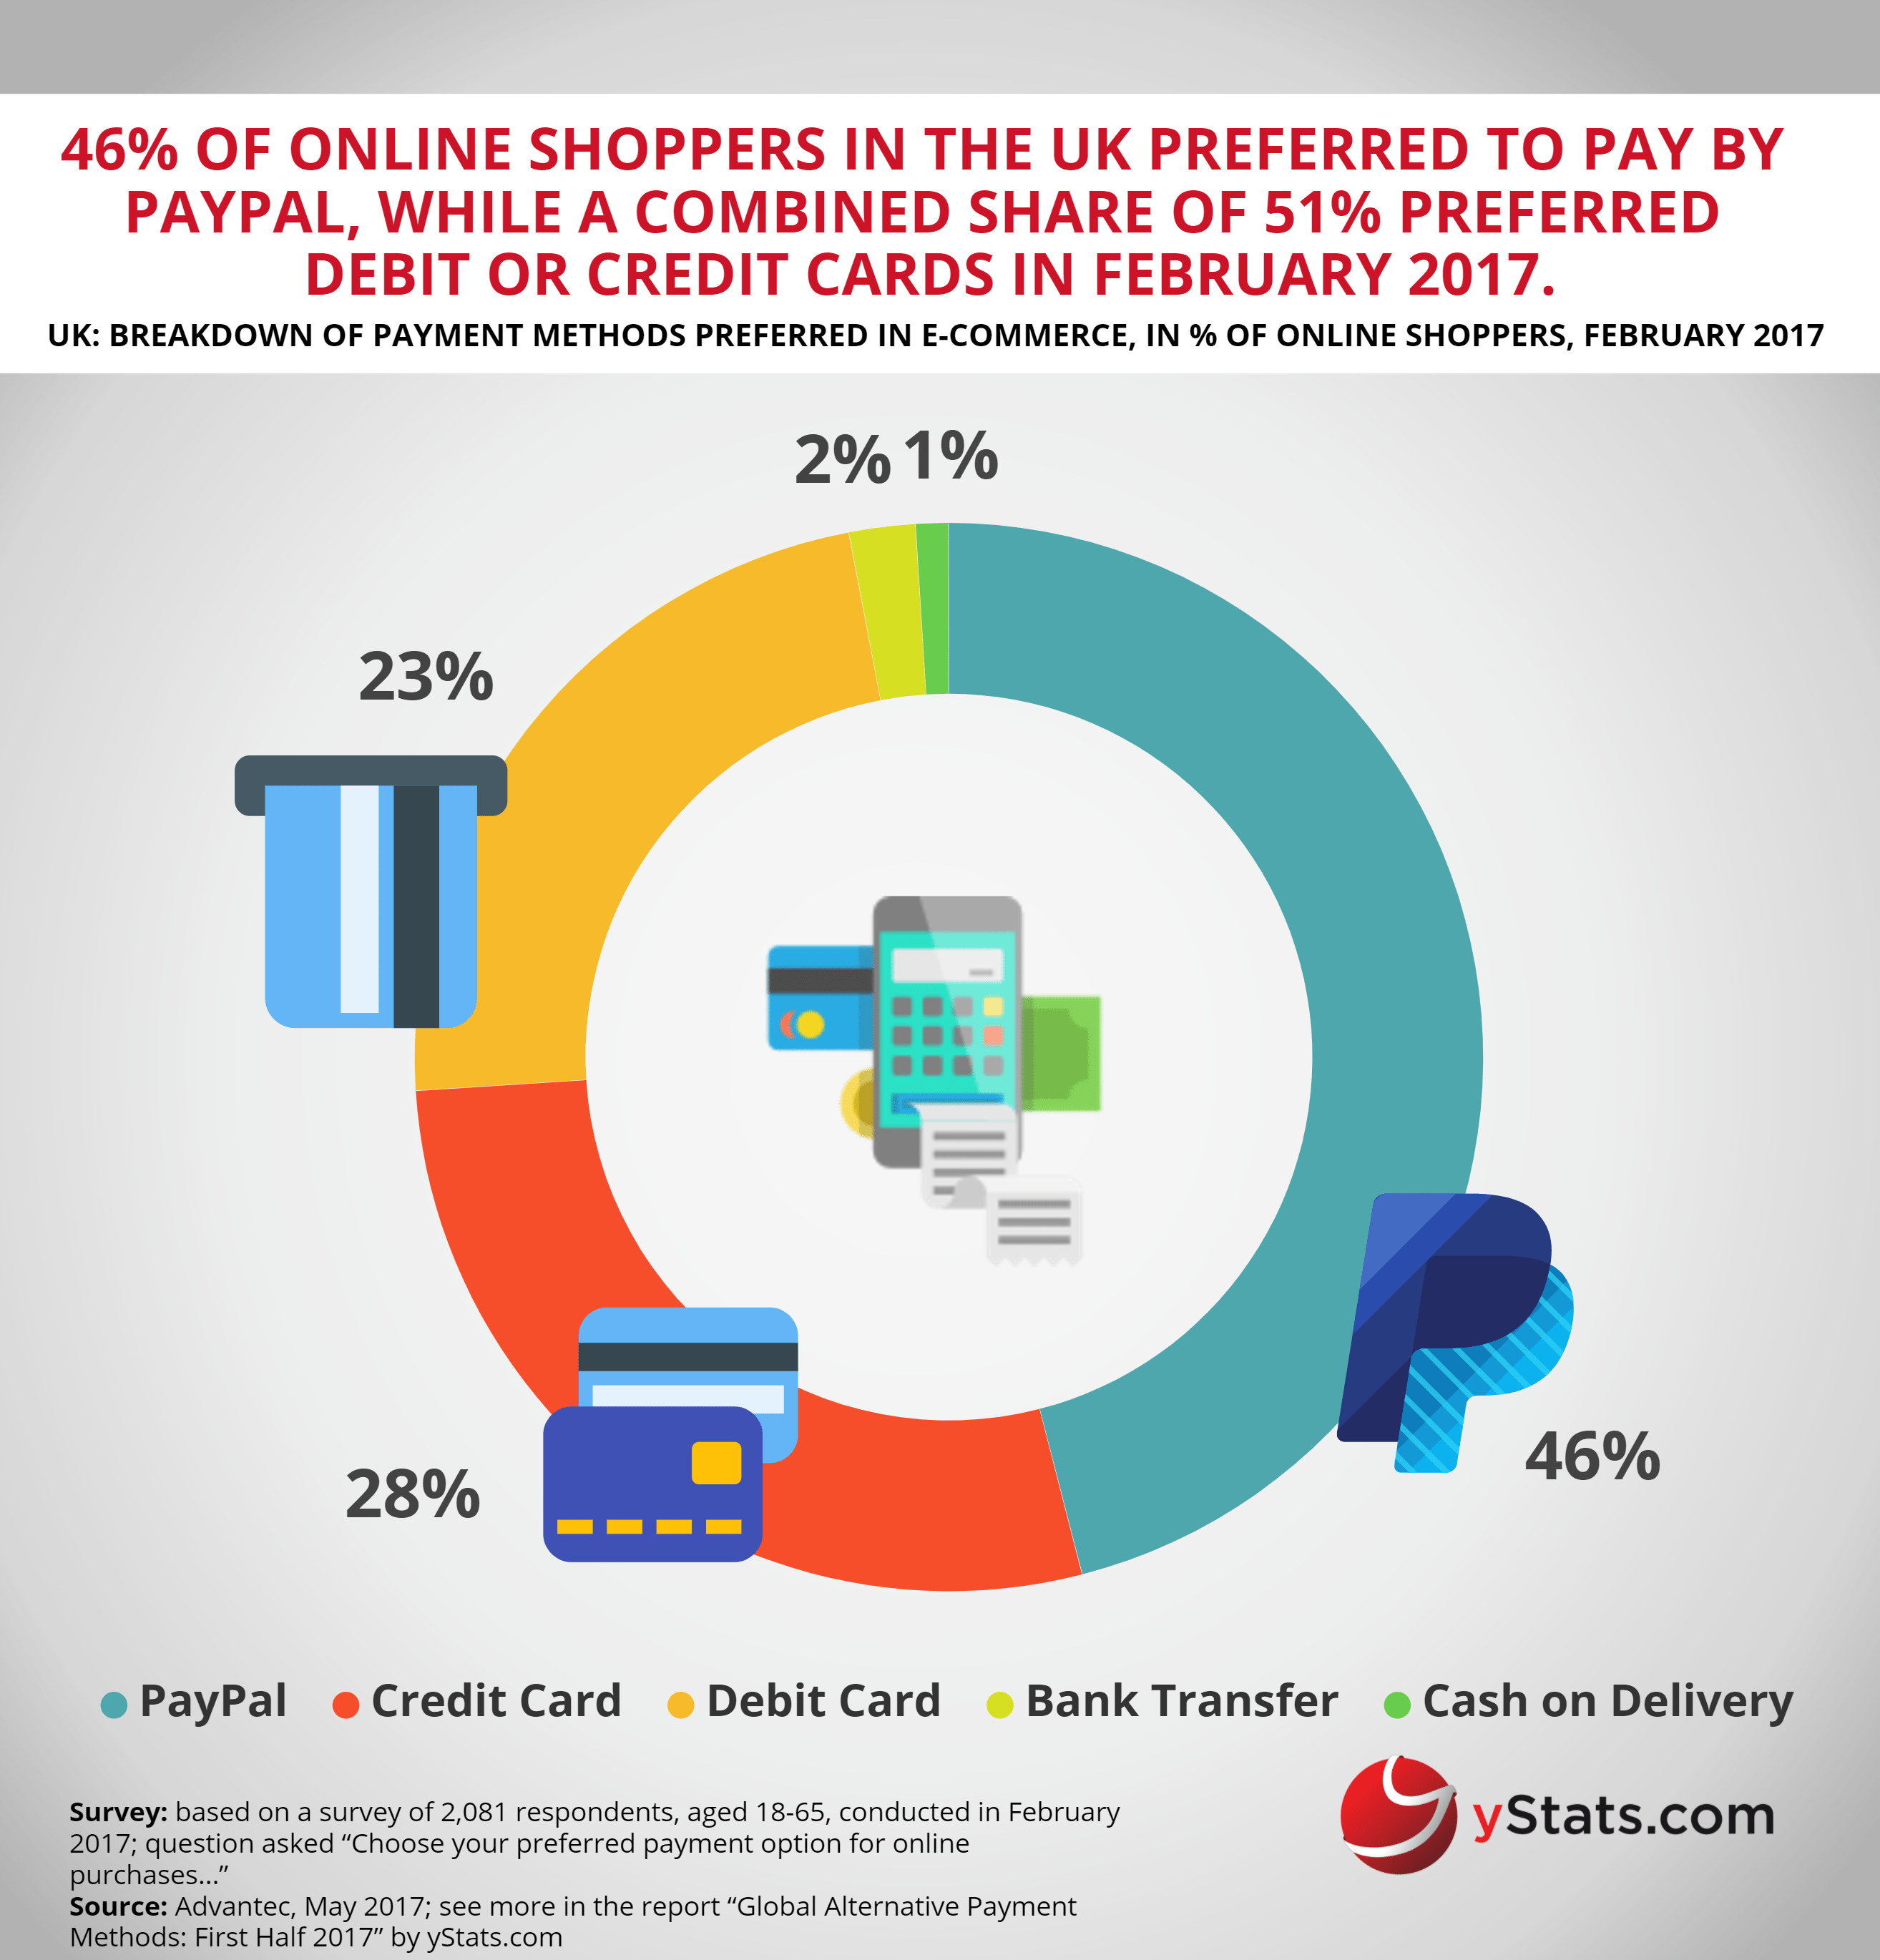 YStats.com Infographic Global Alternative Payment Methods